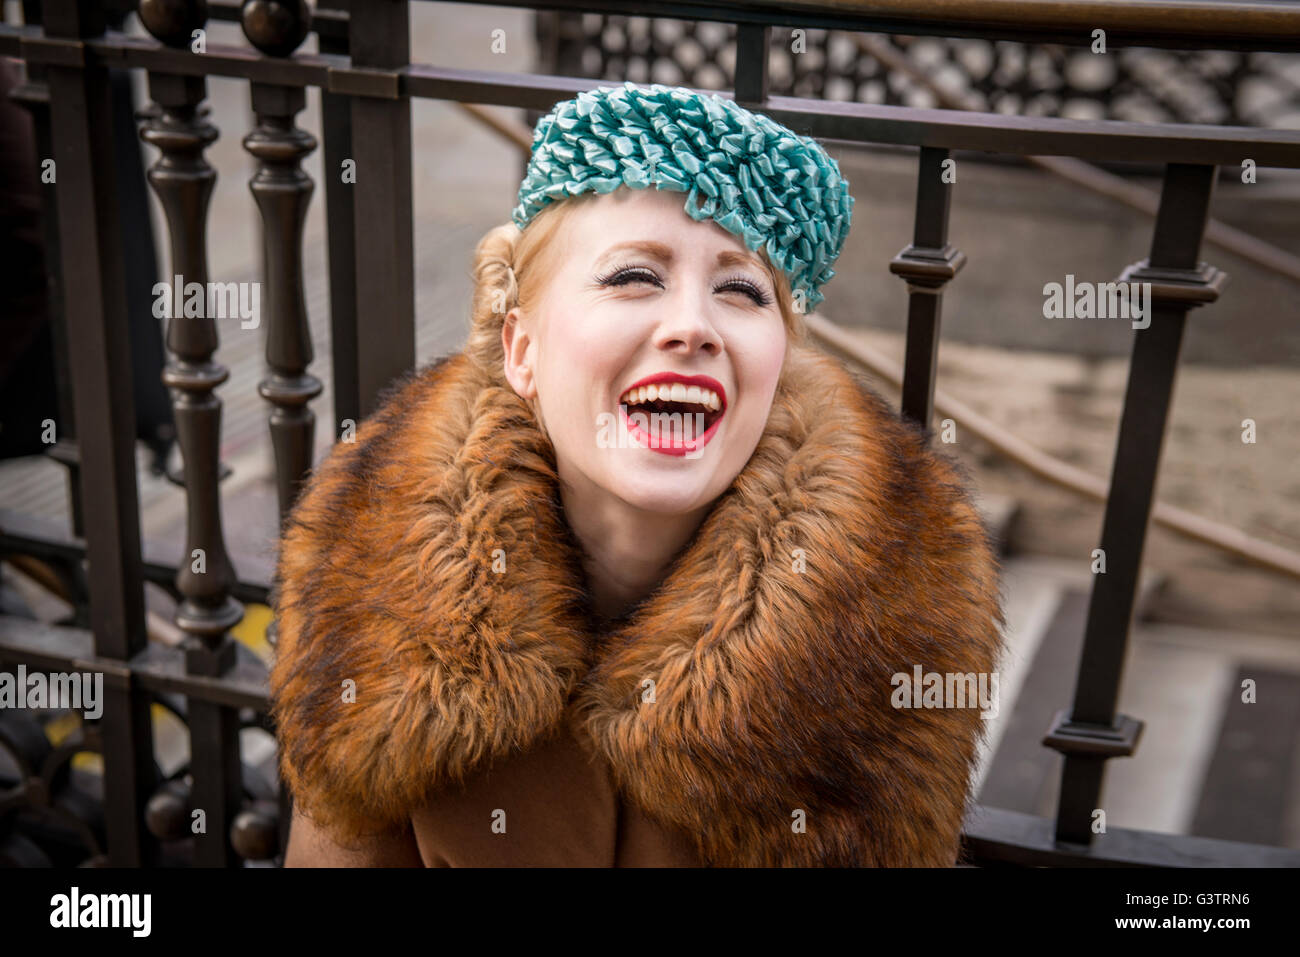 A stylish young woman dressed in 1930s style clothing sitting laughing by railings at the entrance to Piccadilly - Stock Image